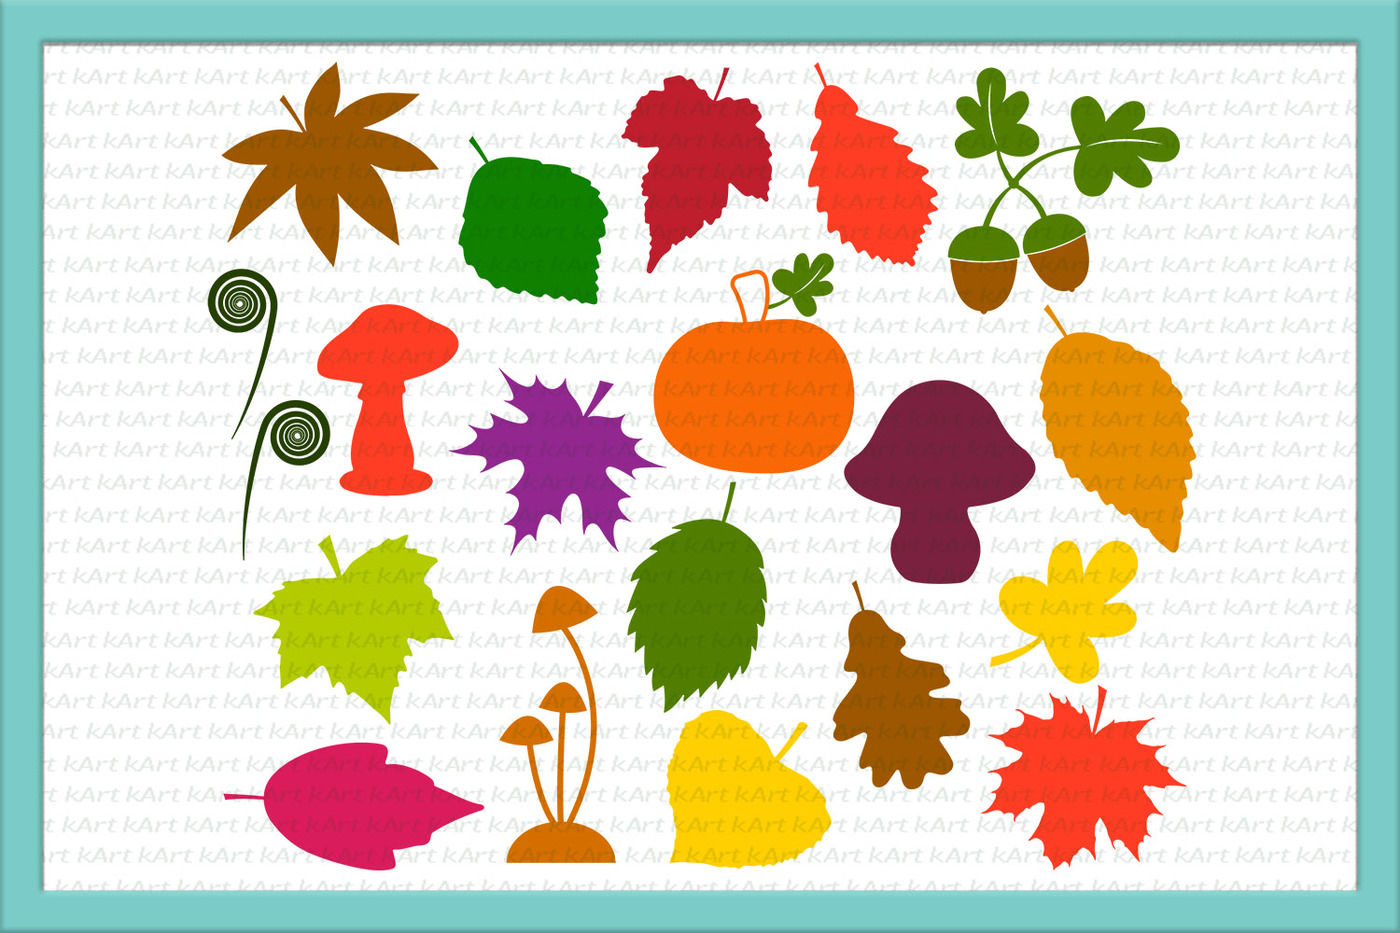 25+ Leaves Svg, Fall Leaves Svg, Leaves Clipart, Mushrooms Svg, Pumpkin Svg, Fall Bundle Svg, Acorn Svg, Maple Leaf Svg, Png, Jpeg, Dxf, Svgs Design